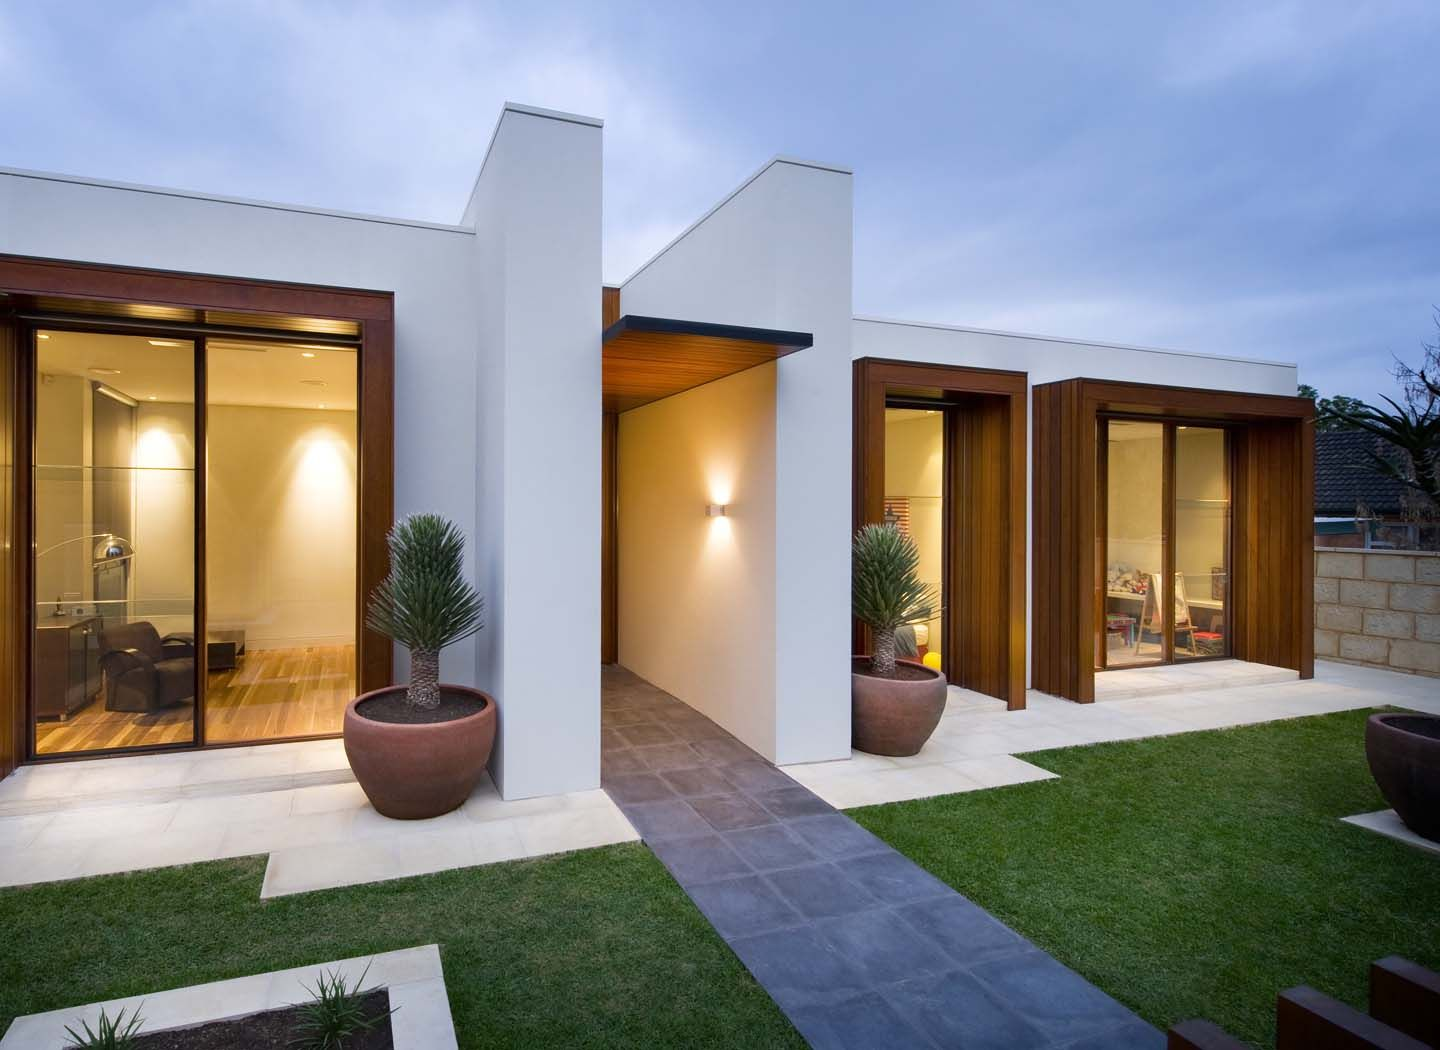 Seventh Ave | CHASECROWN HOMES - Elevations | Pinterest | Exterior ...